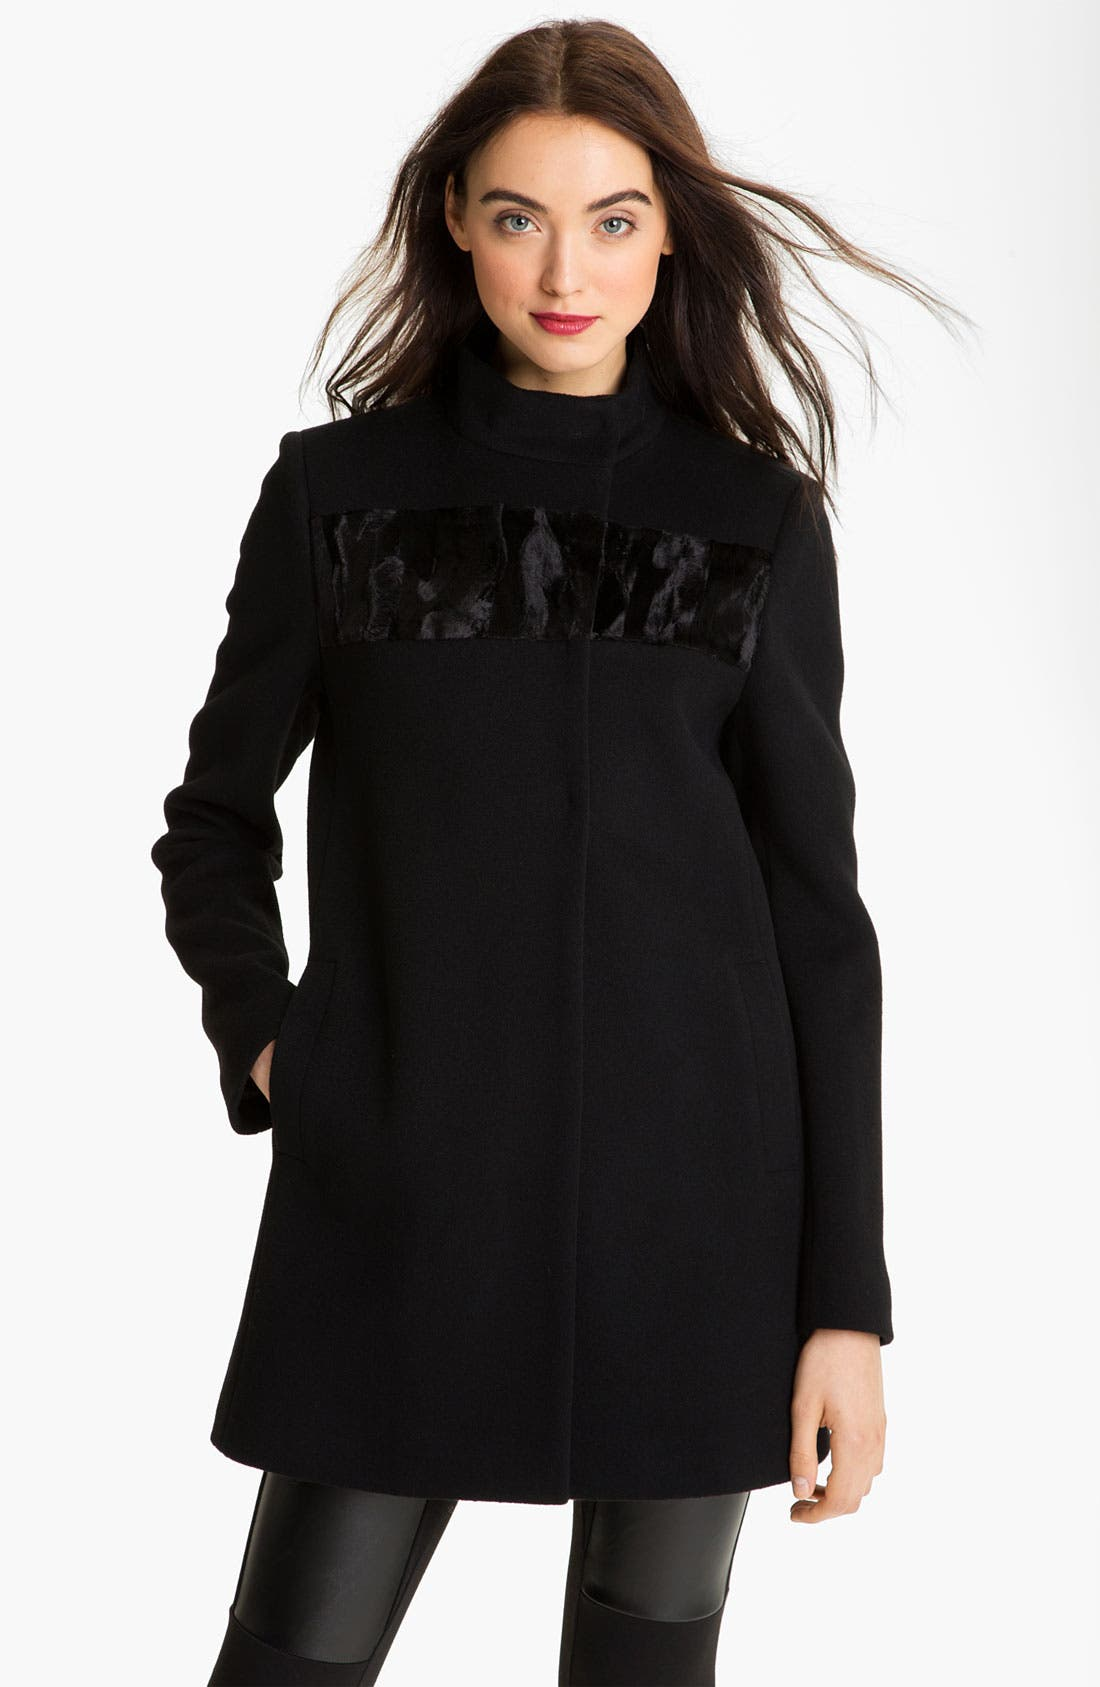 Main Image - Elie Tahari Wool Coat with Faux Fur Detail (Petite) (Online Exclusive)